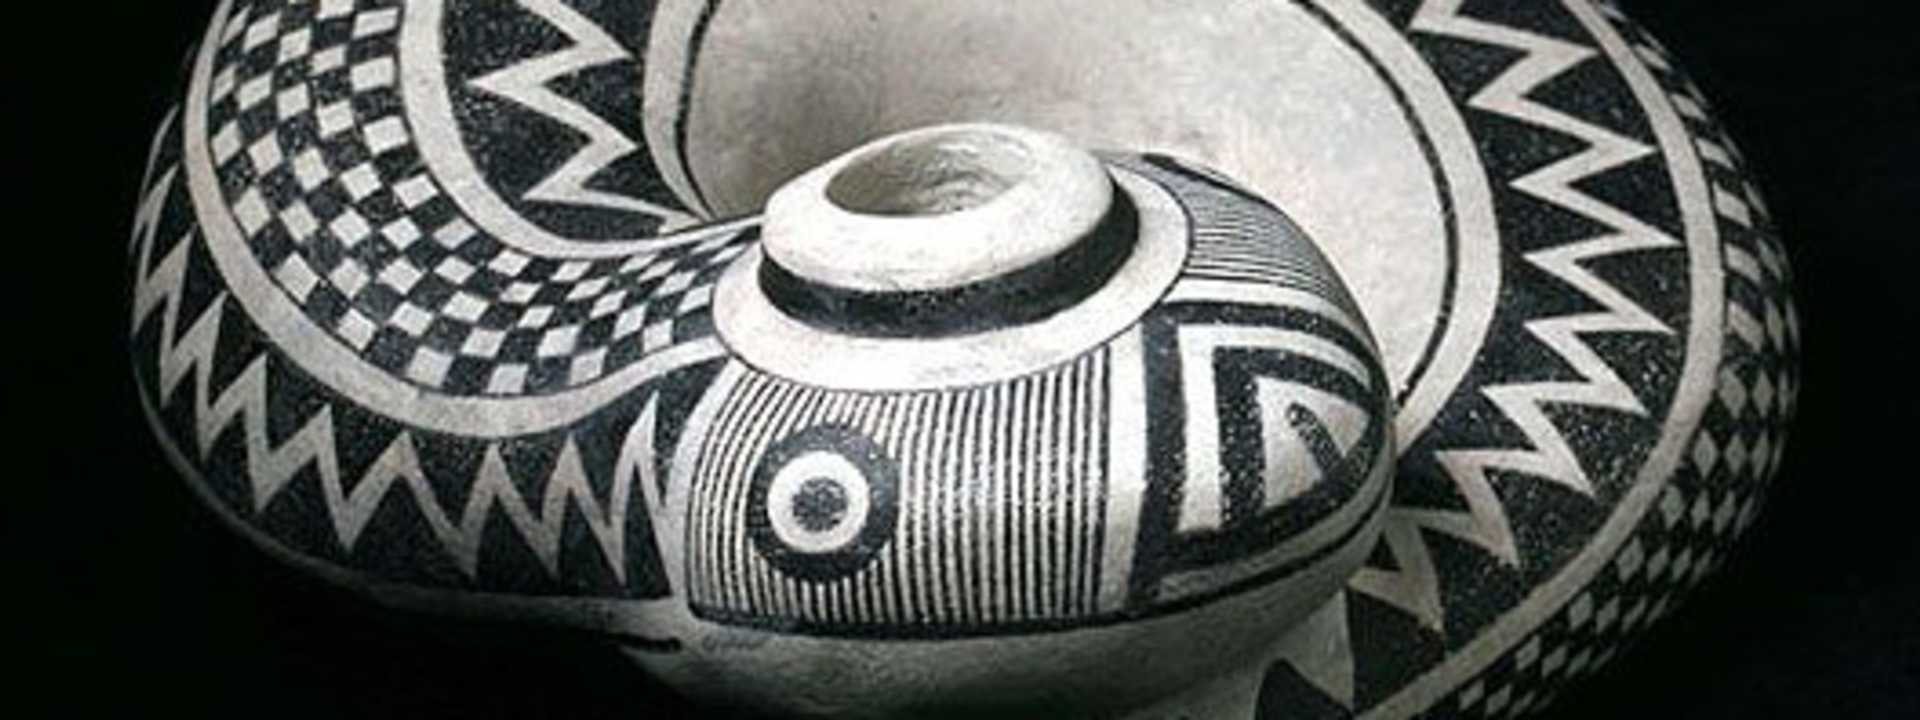 An example of Native American pottery from the Southwest featuring traditional geometric designs.